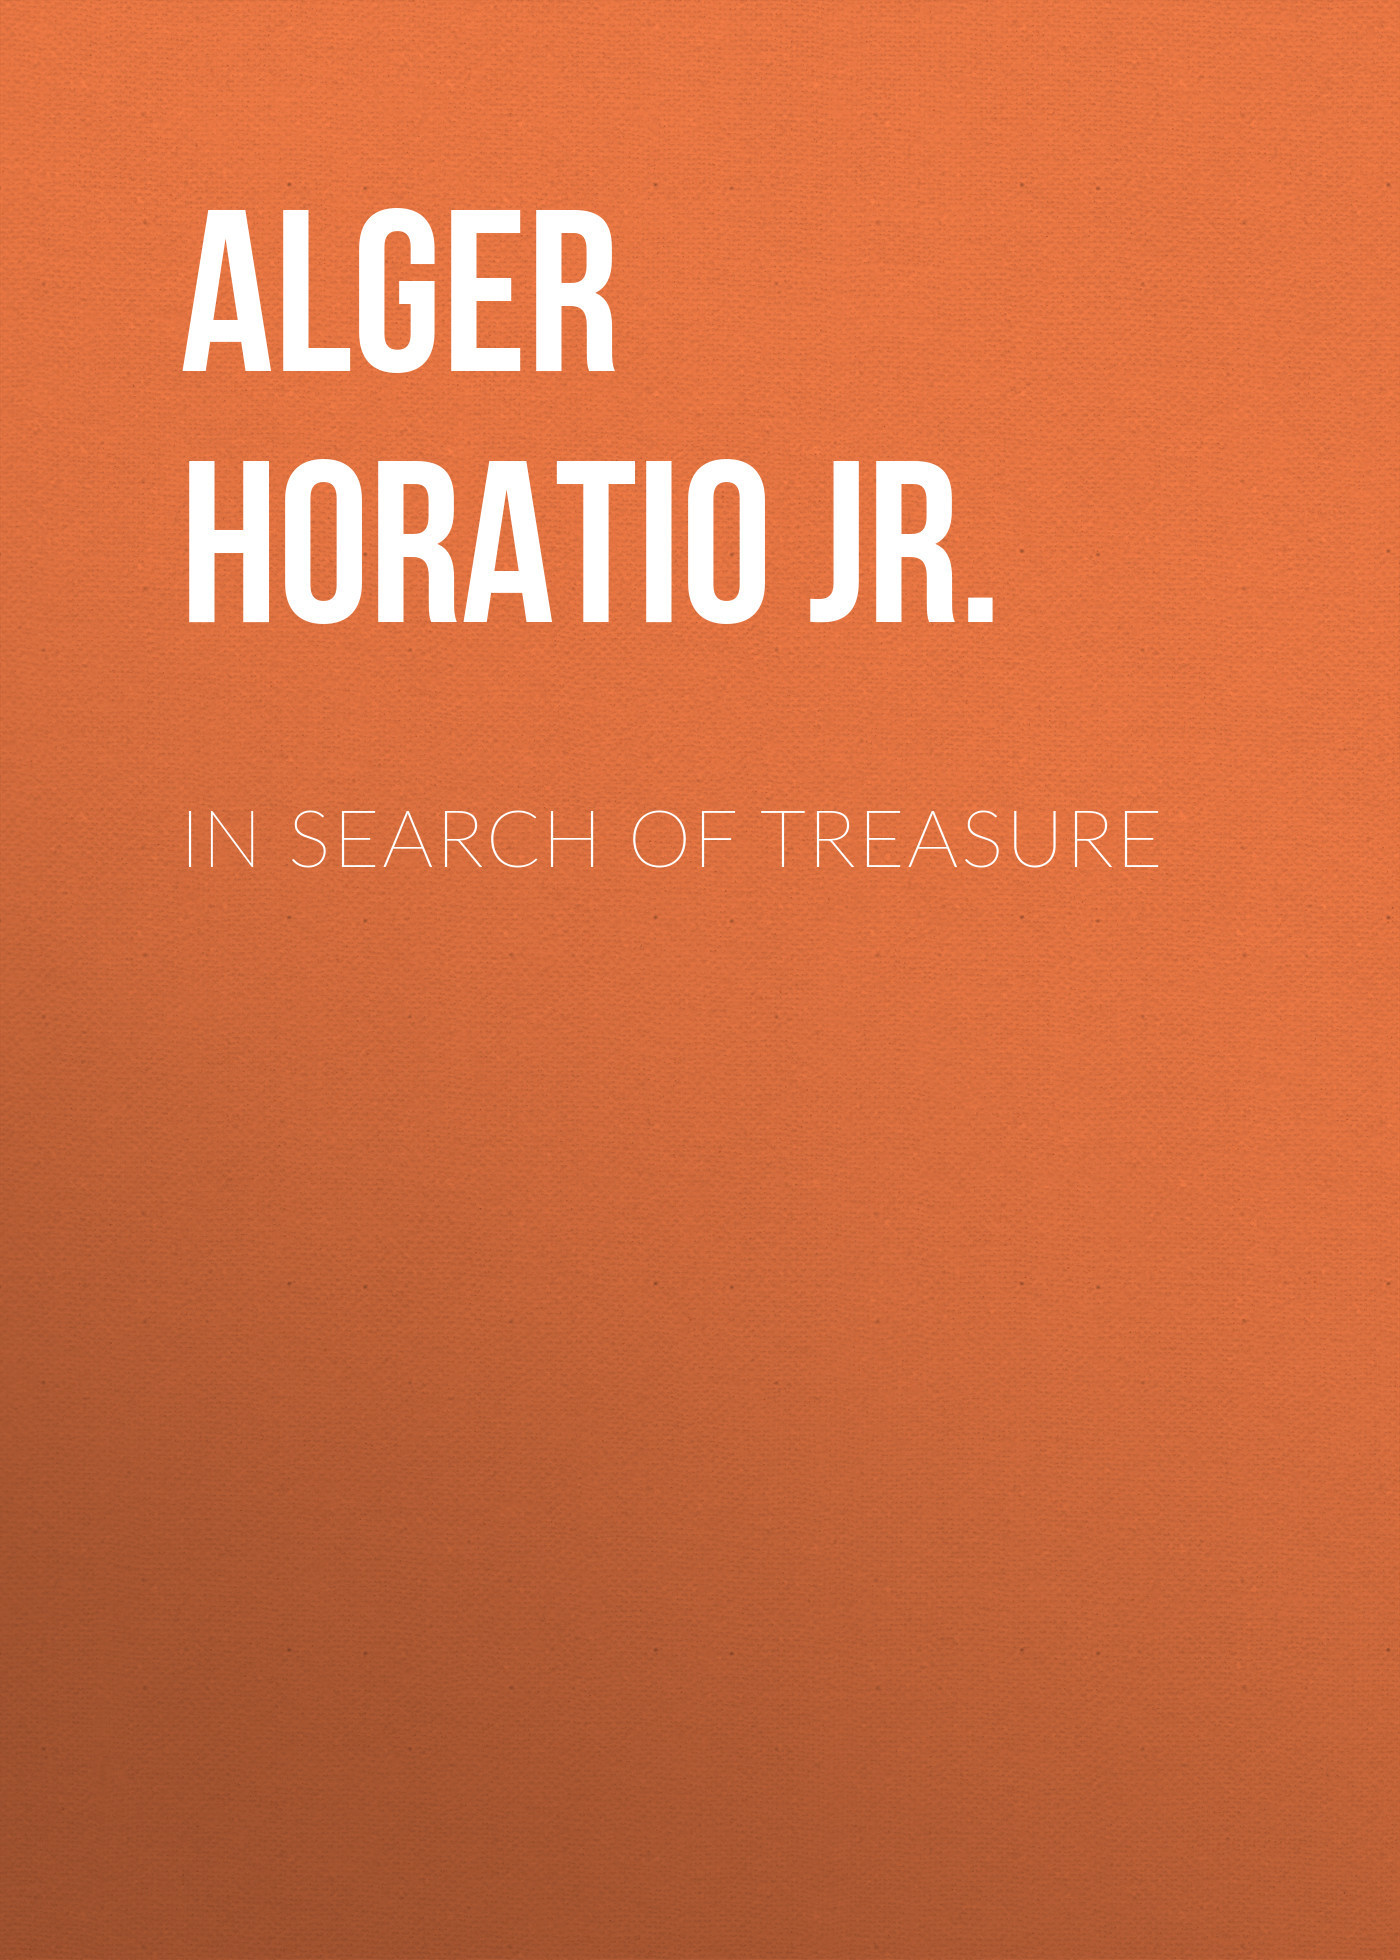 Alger Horatio Jr. In Search of Treasure search of higgs boson